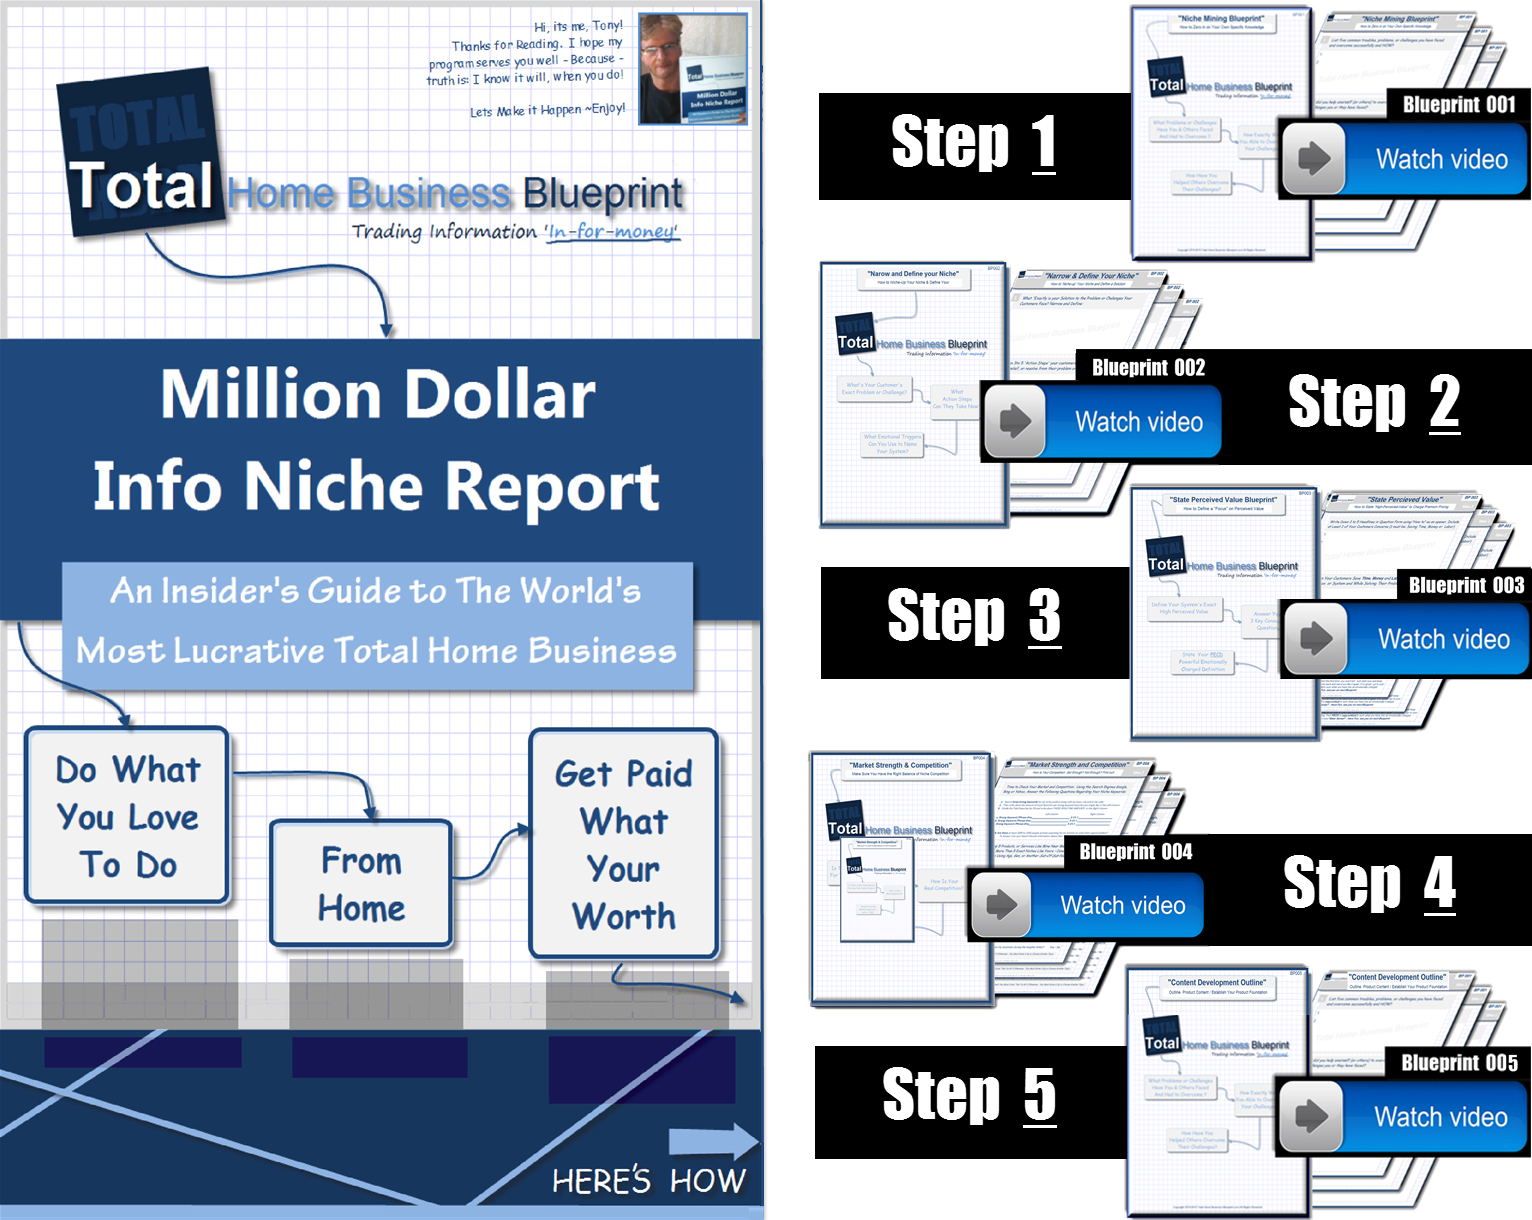 Vidz4udemy total home business blueprint width1532 aligncenter topmargin0 fullwidthy malvernweather Image collections